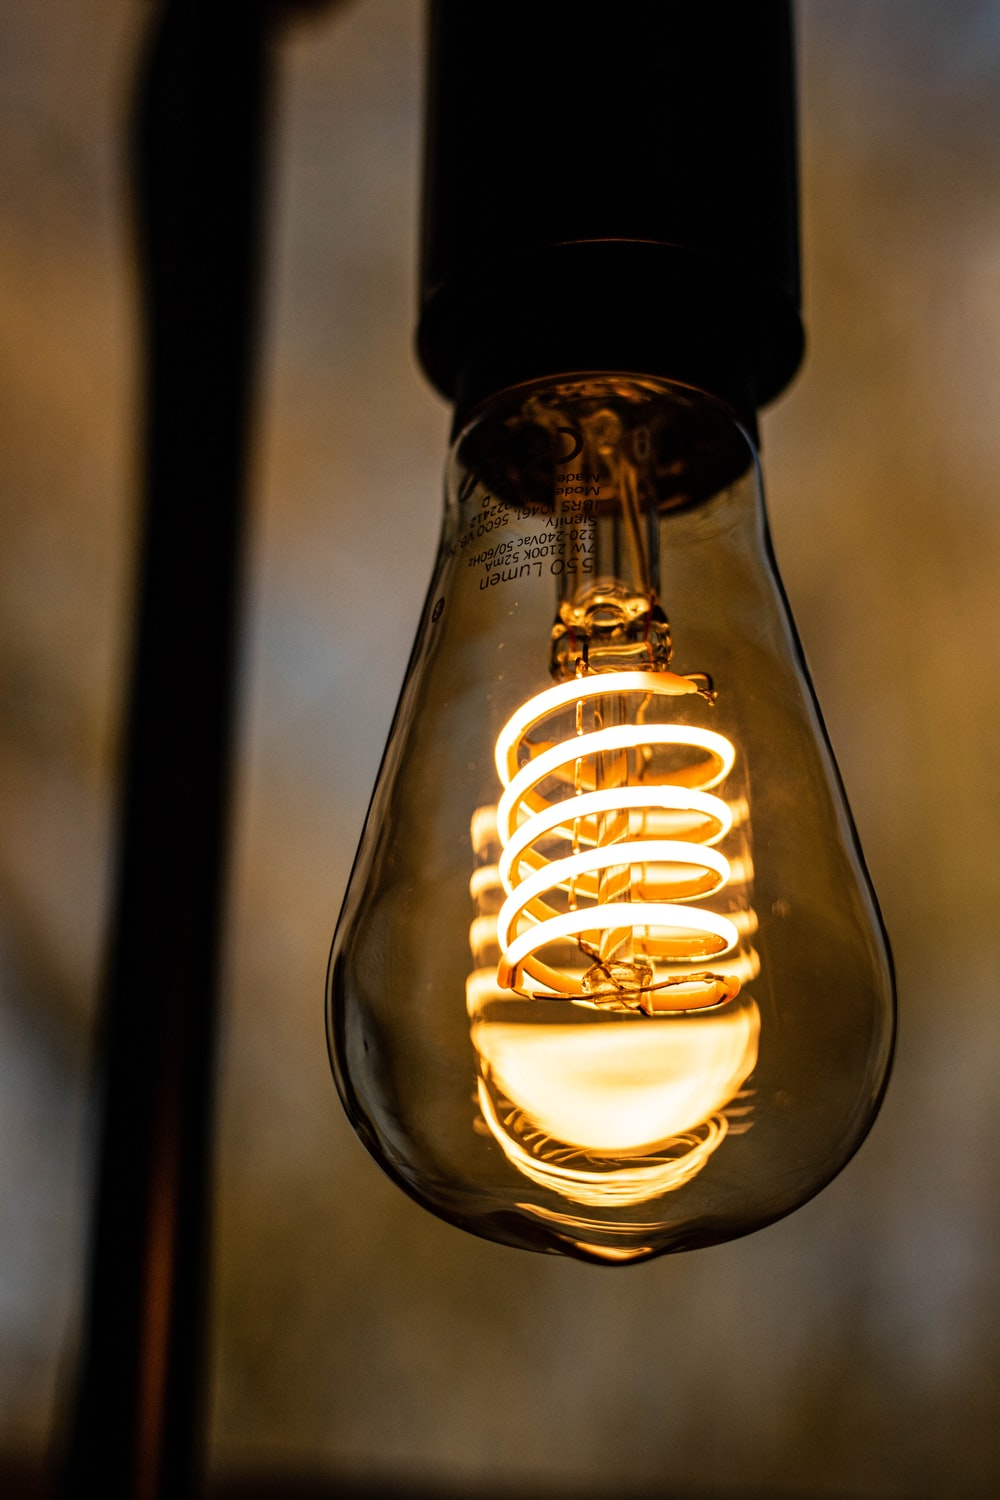 light bulb turned on in close up photography